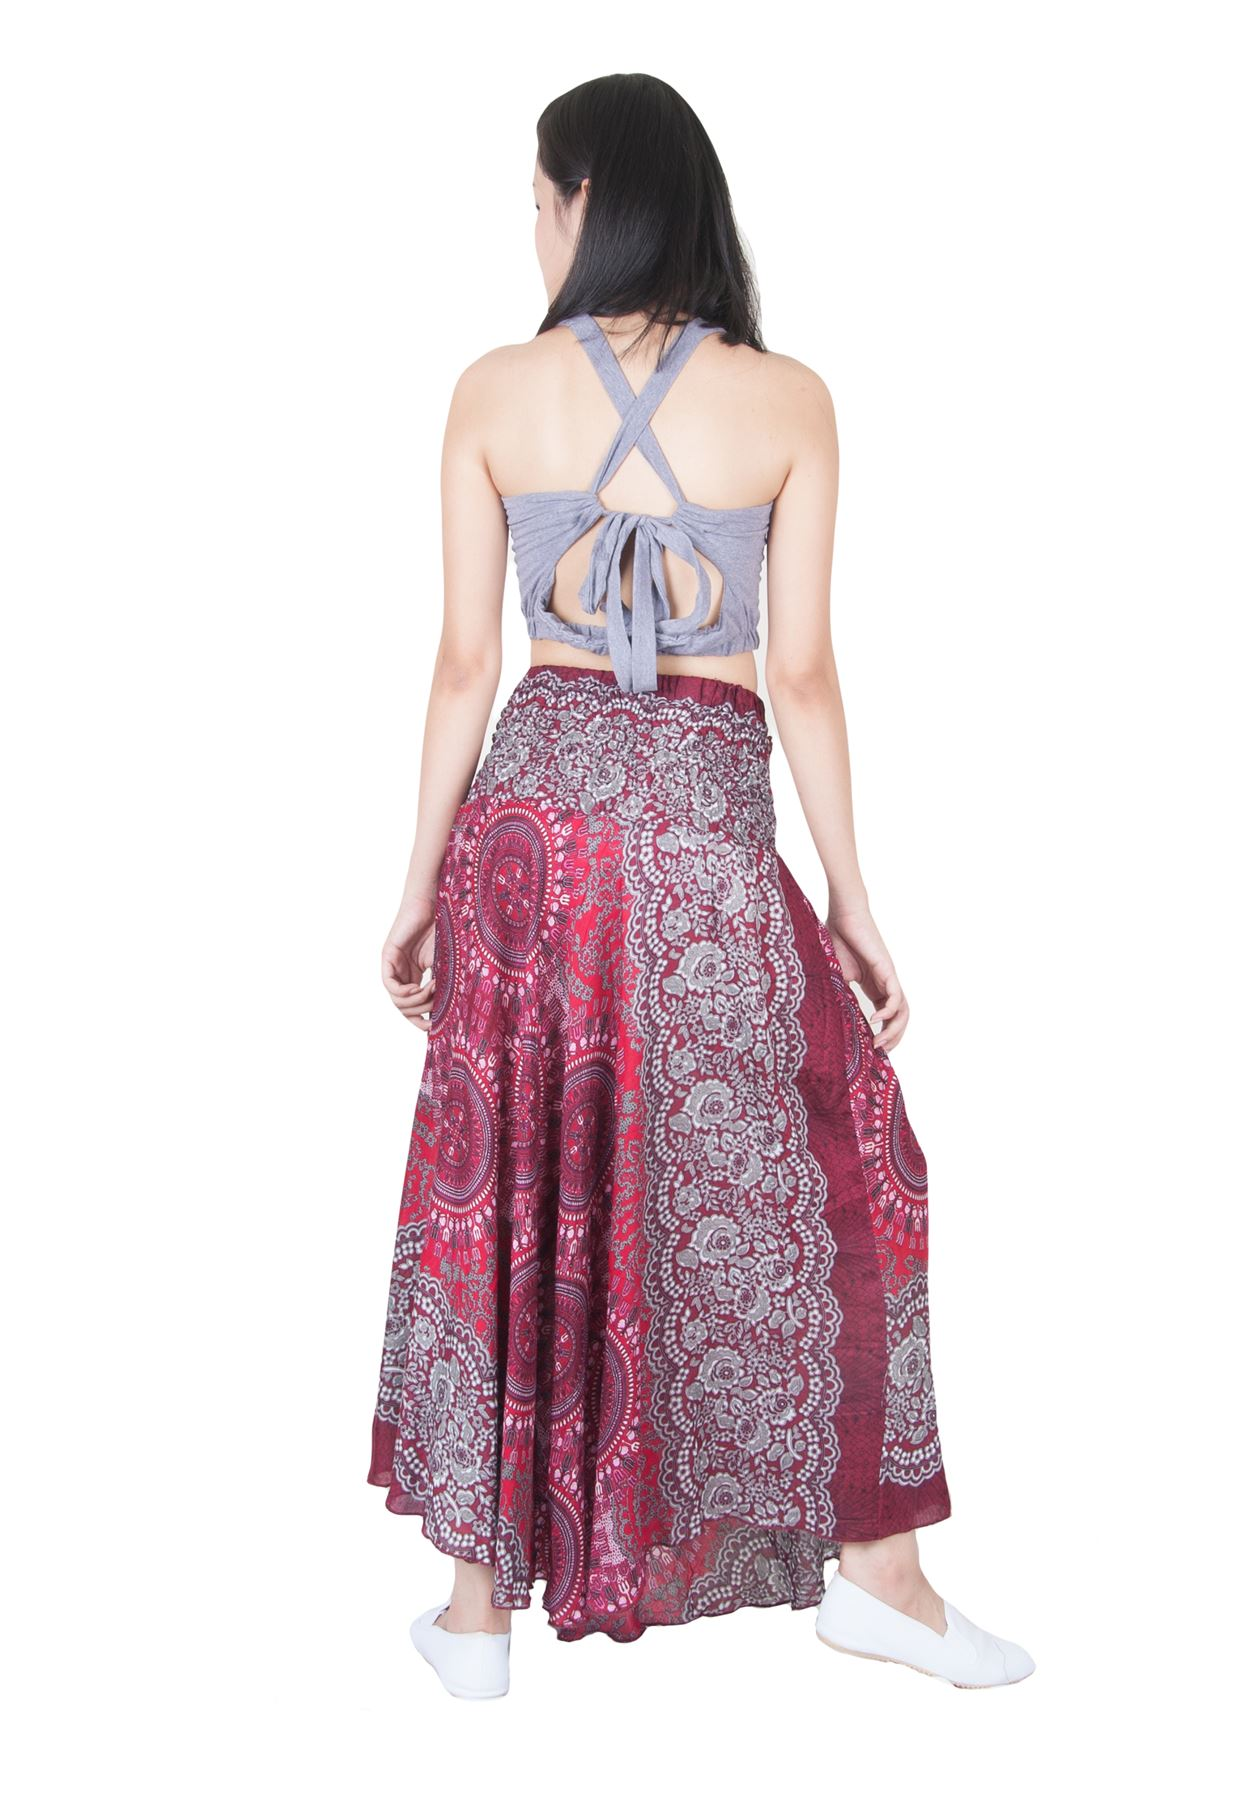 Dresses Gypsy style boutique dresses for women including boho casual maxi dresses, baby doll and cowgirl tube dresses, v-neck dresses and much more. Our affordable maxi dresses .